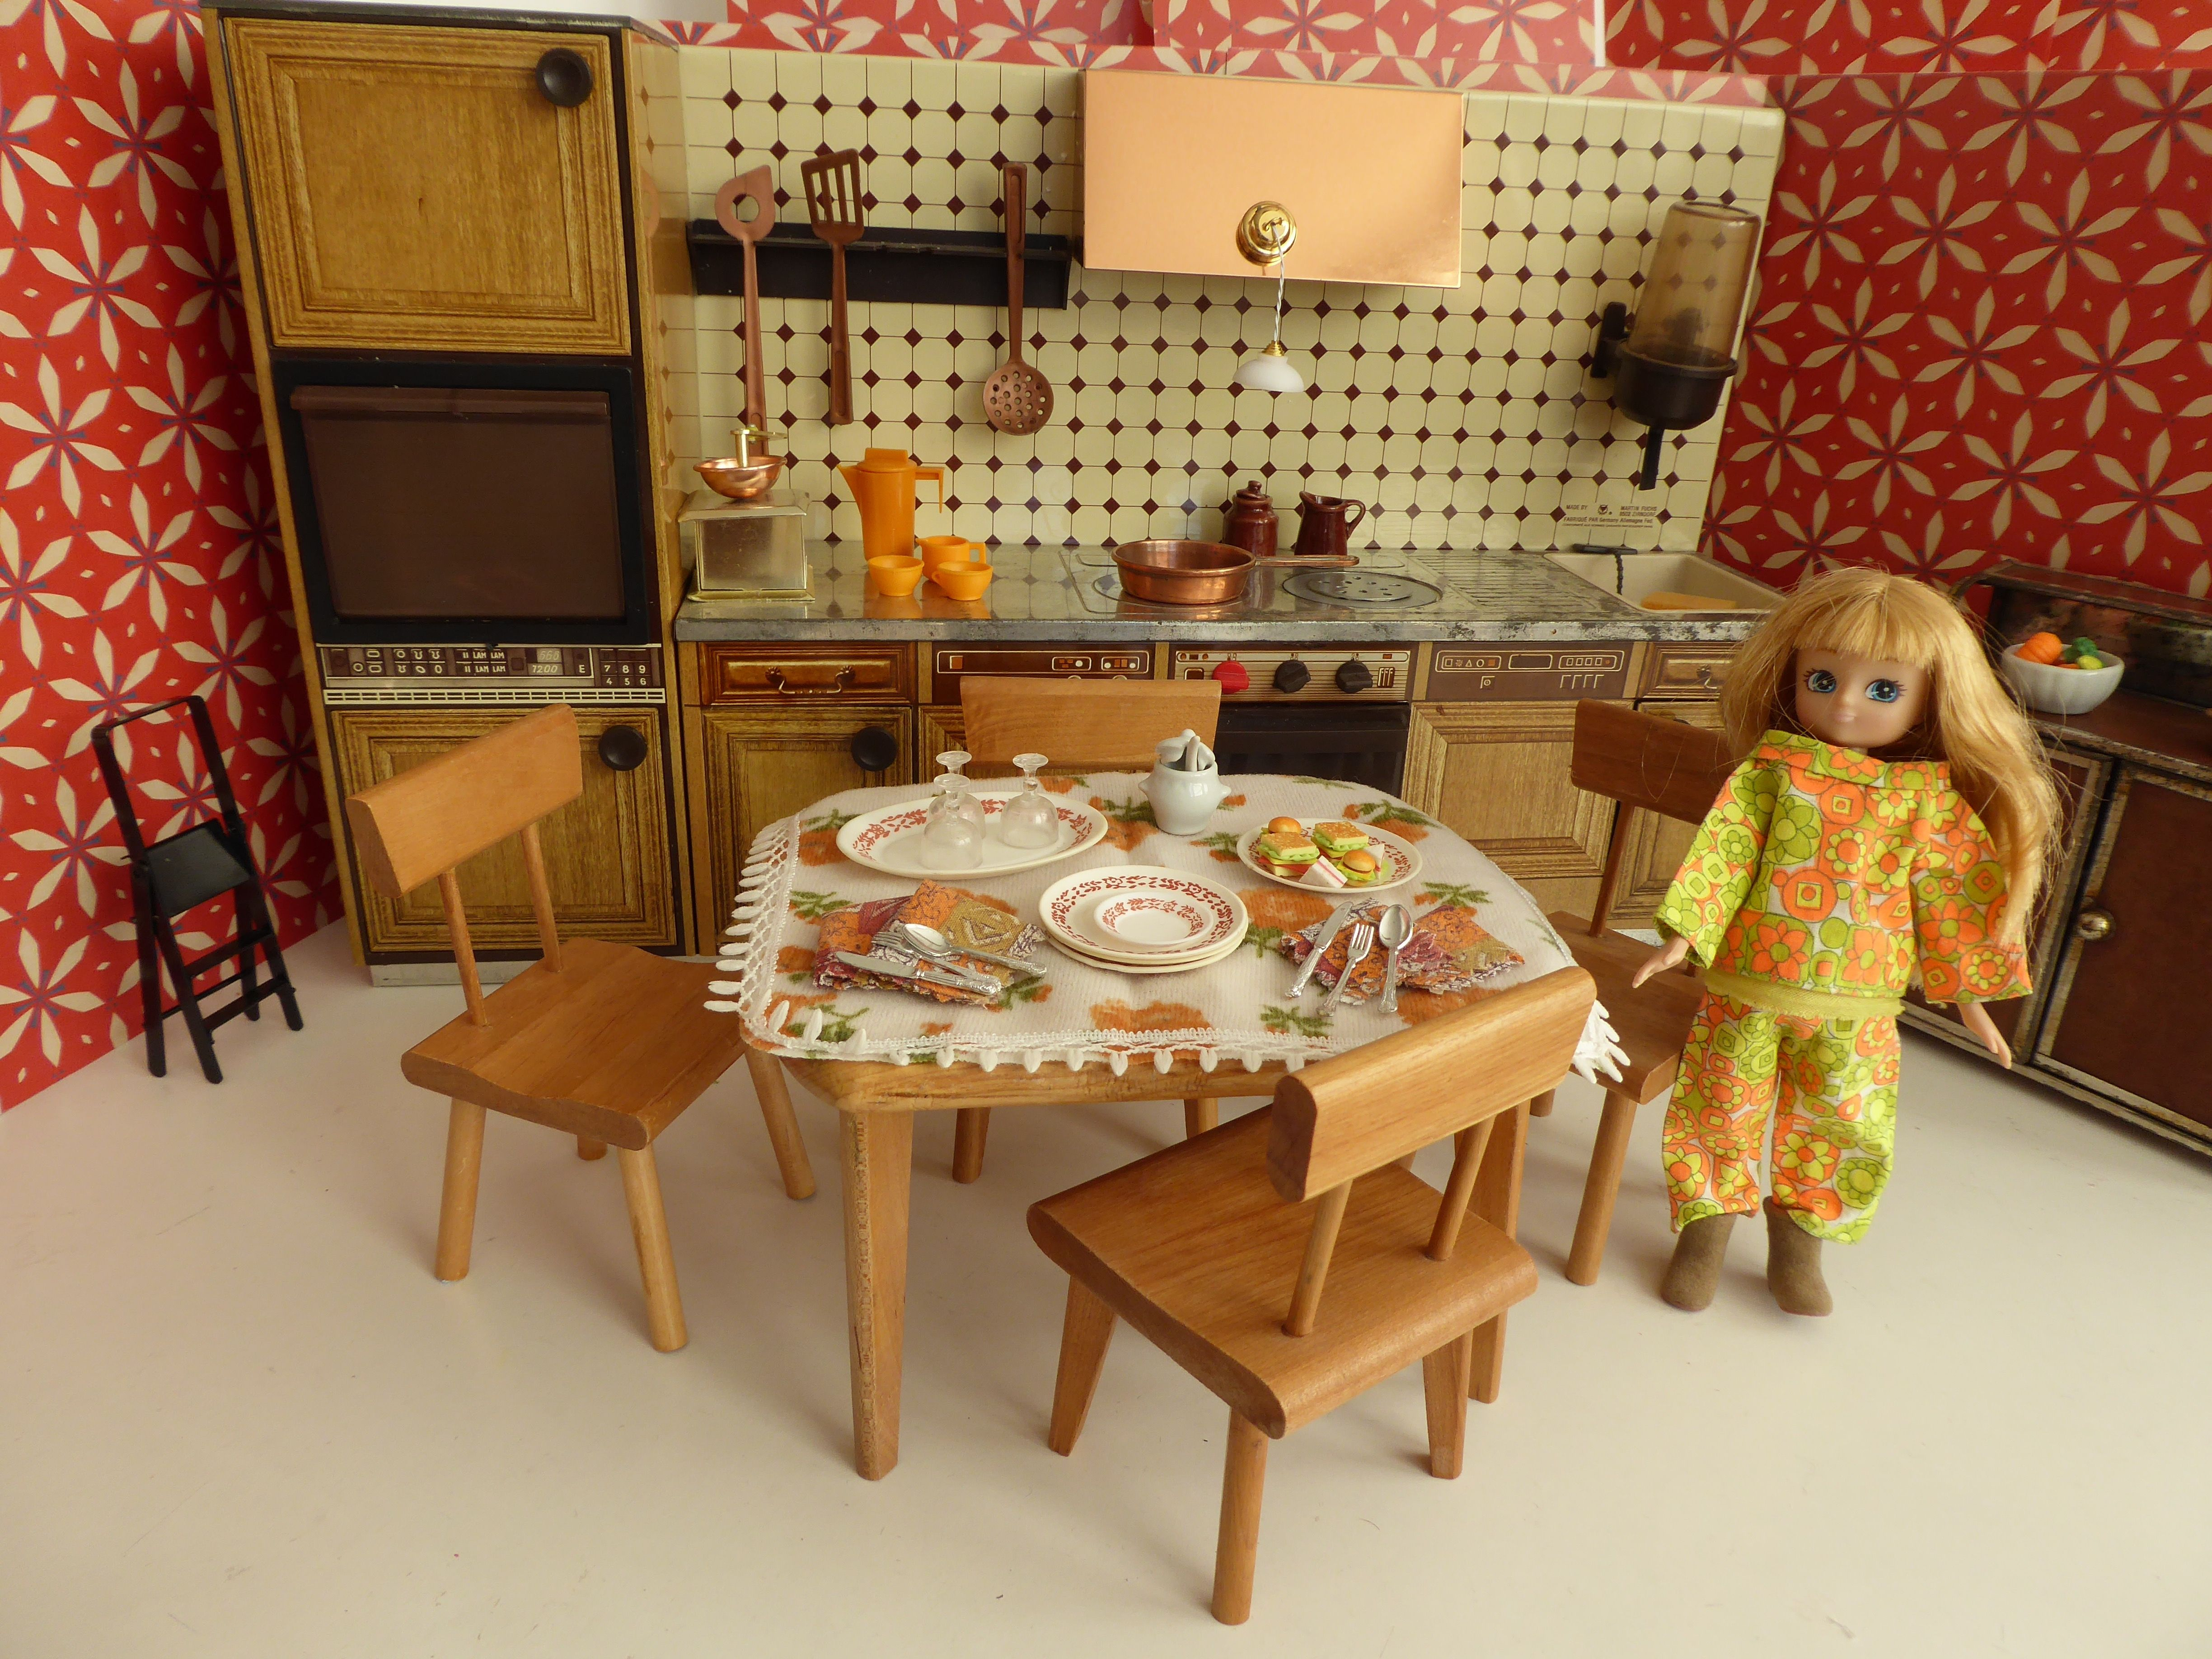 Fabulous Vintage Metal Kitchen Ready For All 6 11 Inch Dolls To Inhabit With Furniture And Accessories Available In Our Etsy